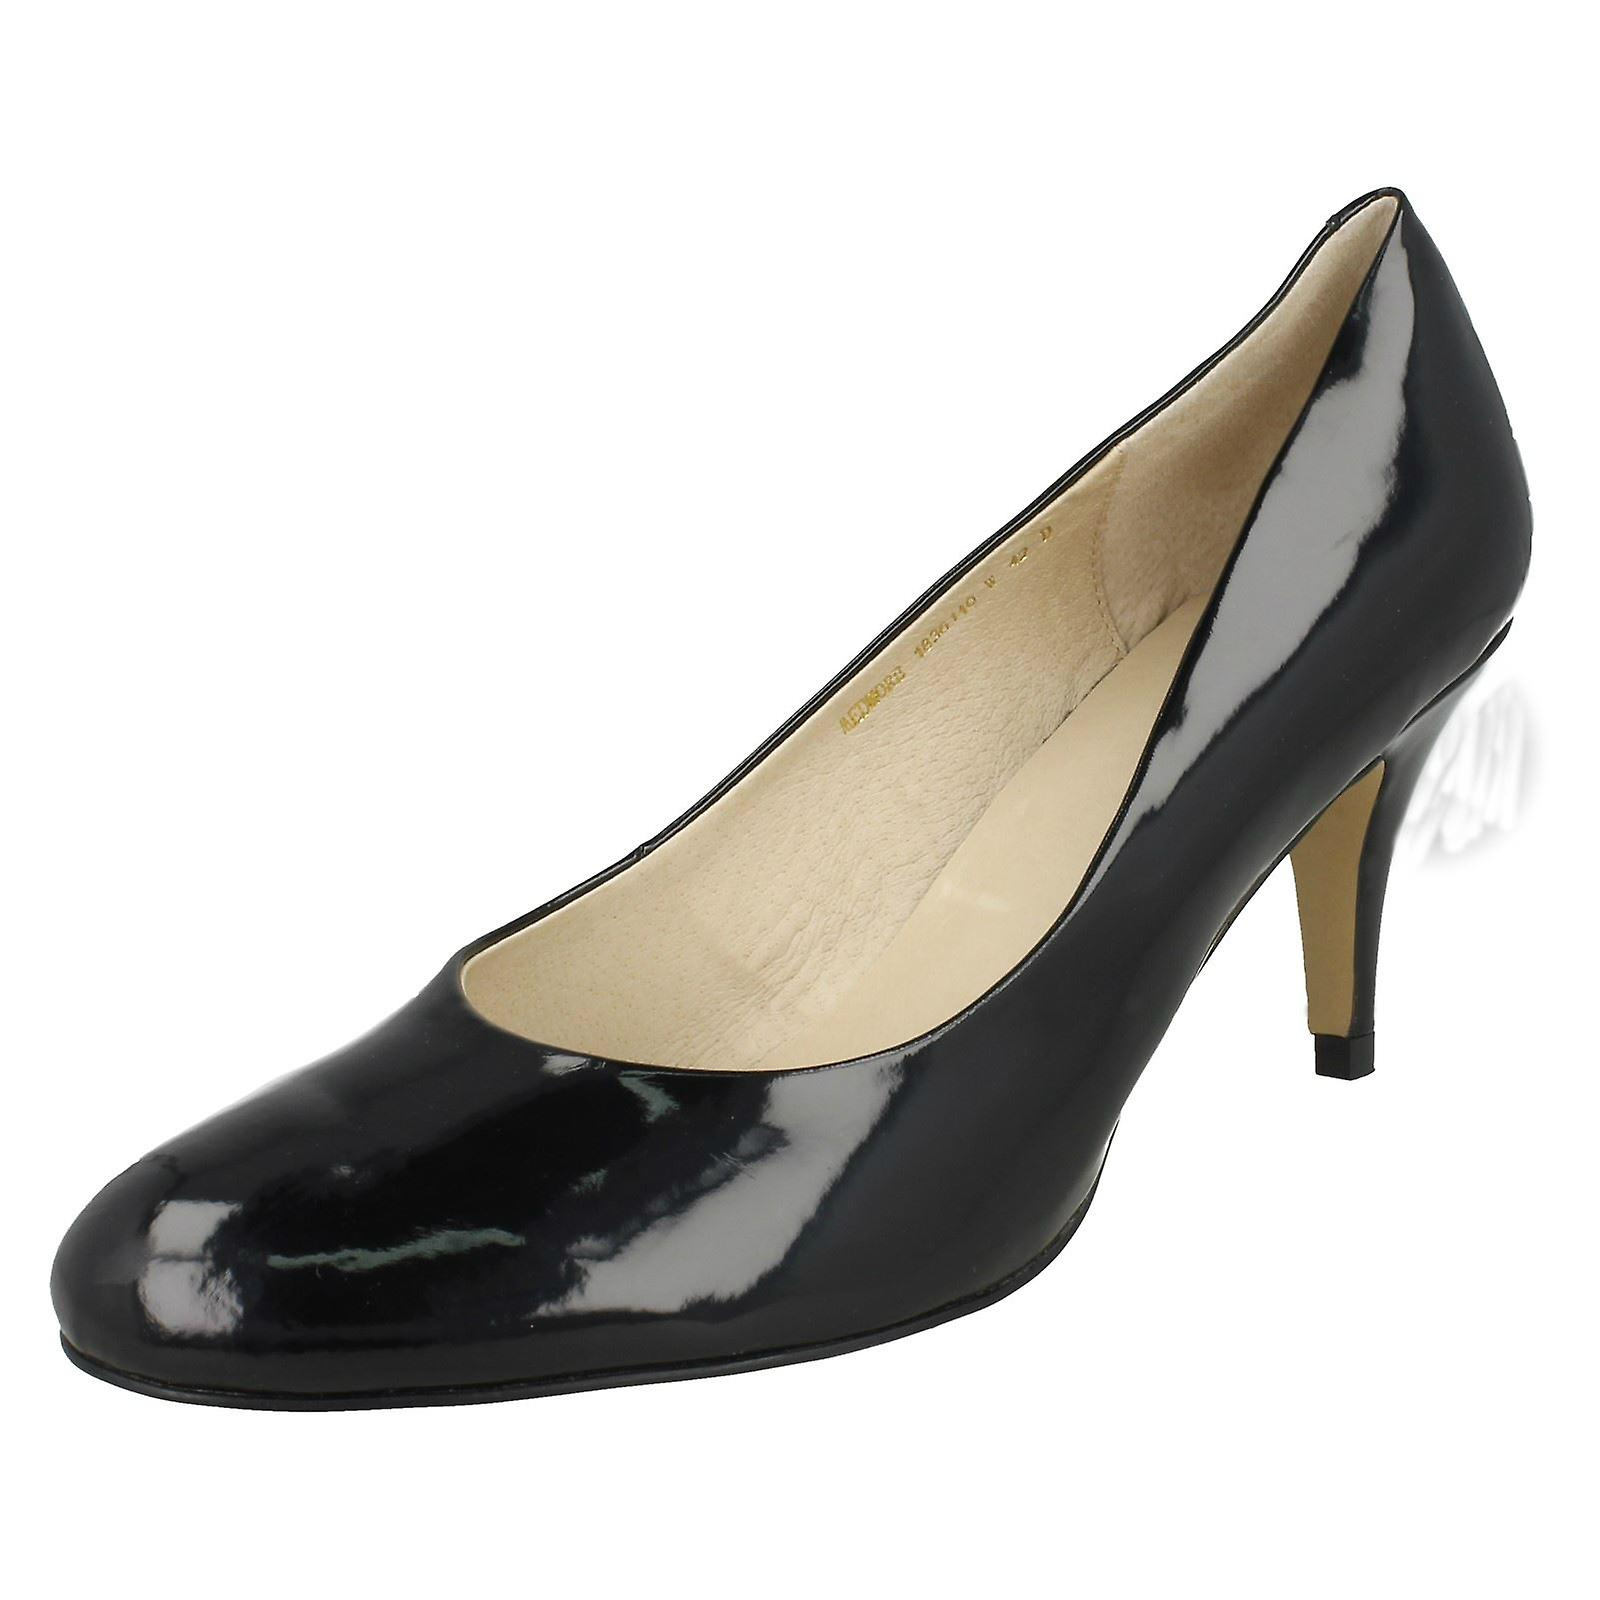 Shoes Heeled Wedmore Dal Ladies Van 1awqZqtB